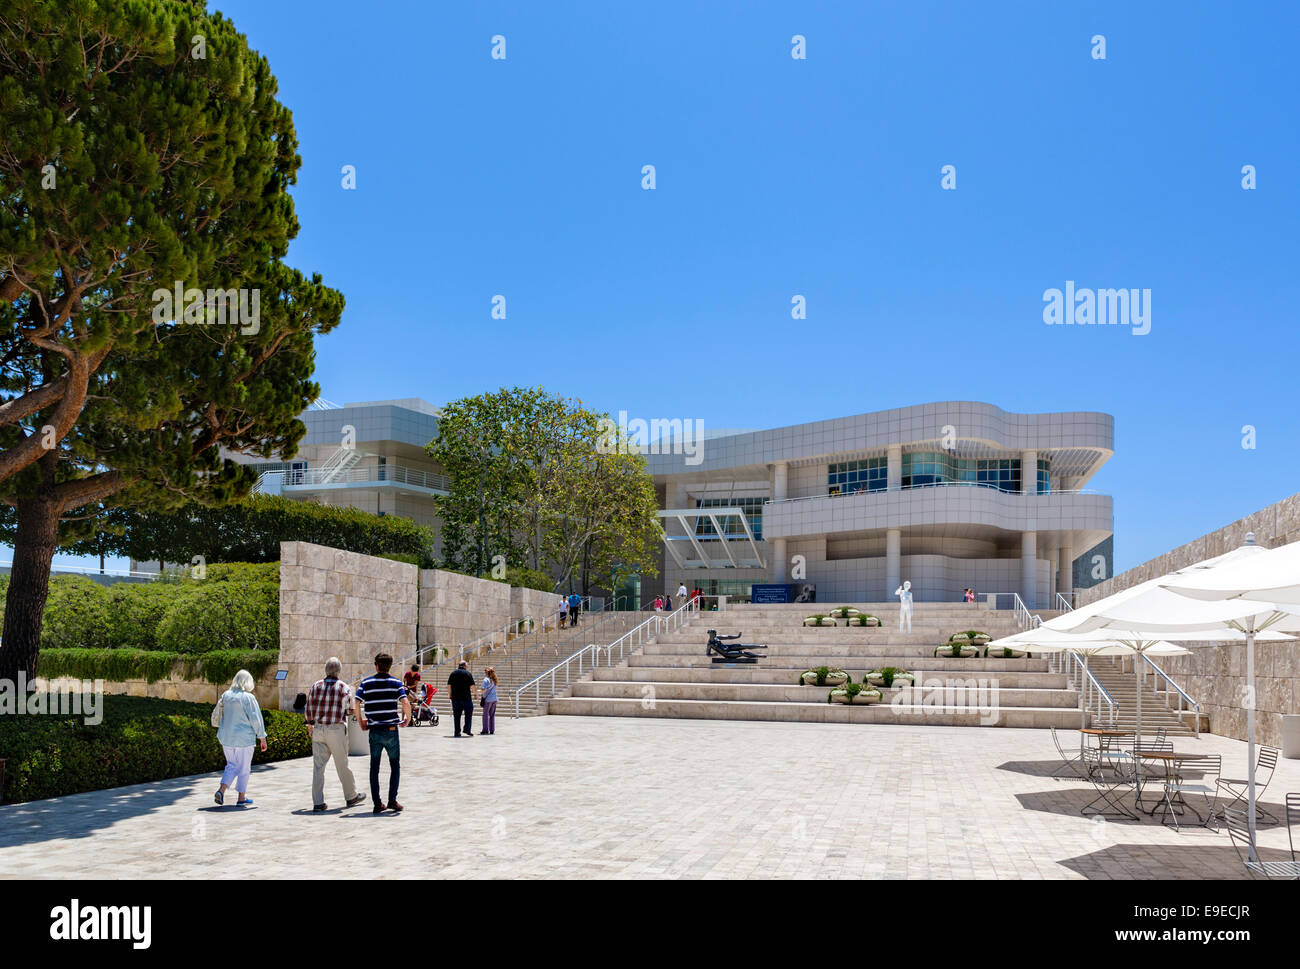 The Getty Center museum complex, Brentwood, Los Angeles, California, USA - Stock Image